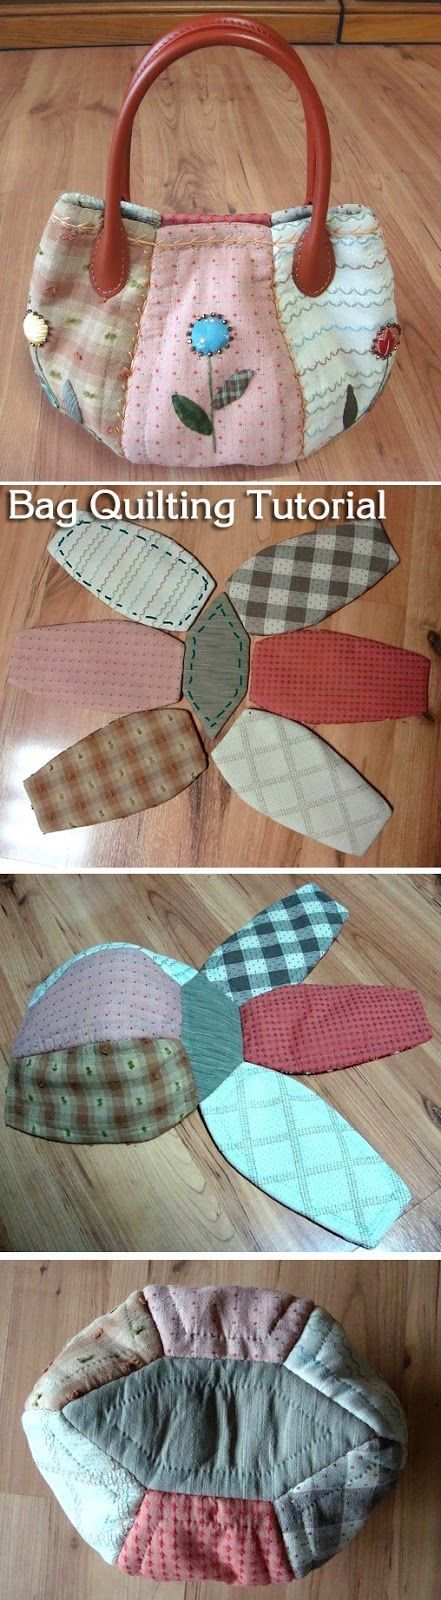 Simple and convenient bag. Patchwork, Quilting. DIY Picture Tutorial. Простая и удобная сумка. Лоскутное шитьё (пэчворк, квилтинг). http://www.handmadiya.com/2015/09/simple-bag-quilting.html: